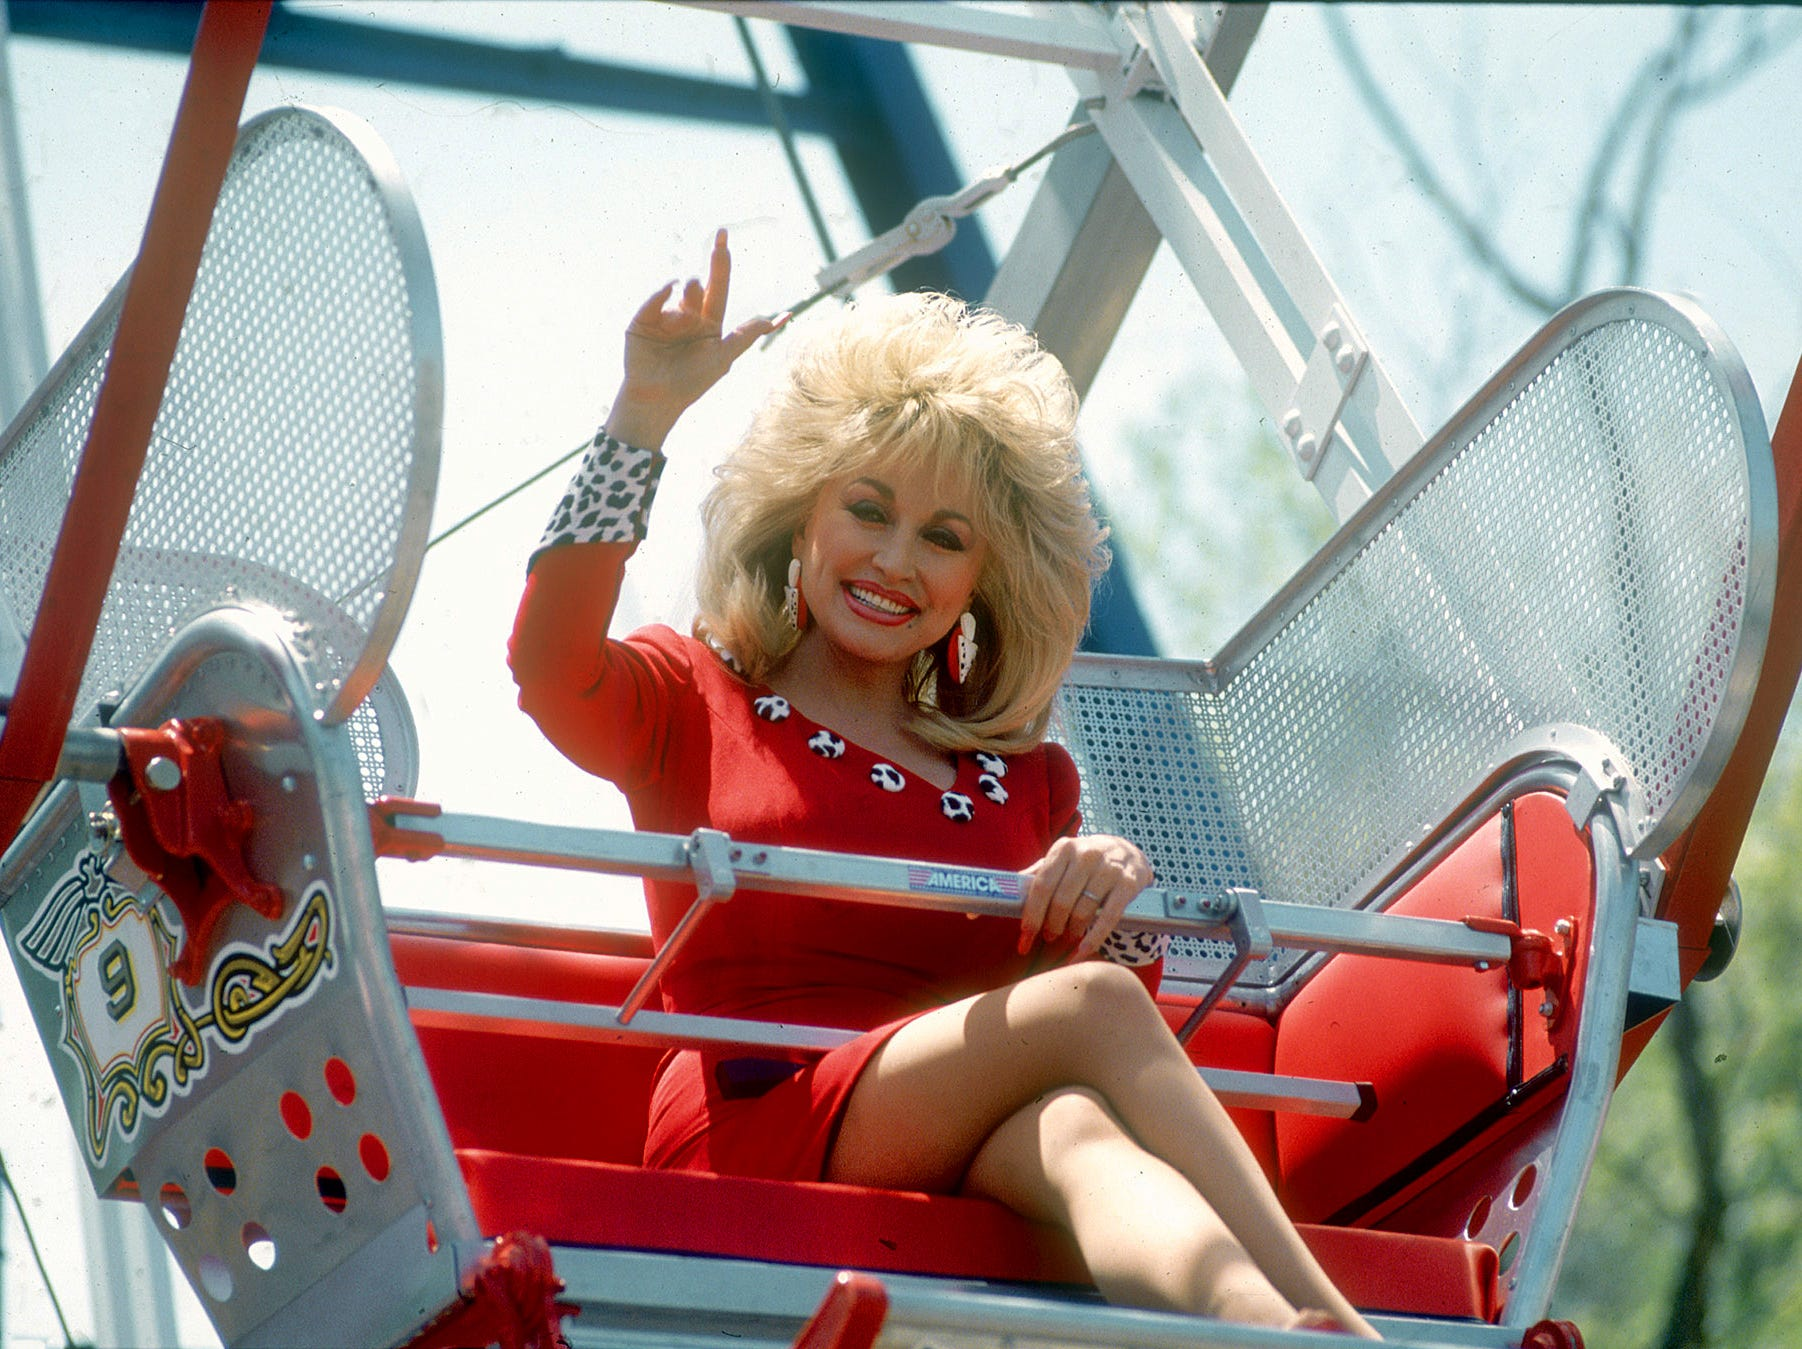 Waving from her seat on the over 100-year-old ferris wheel at Dollywood, Dolly Parton marks the park's seasonal opening in April 23, 1993.